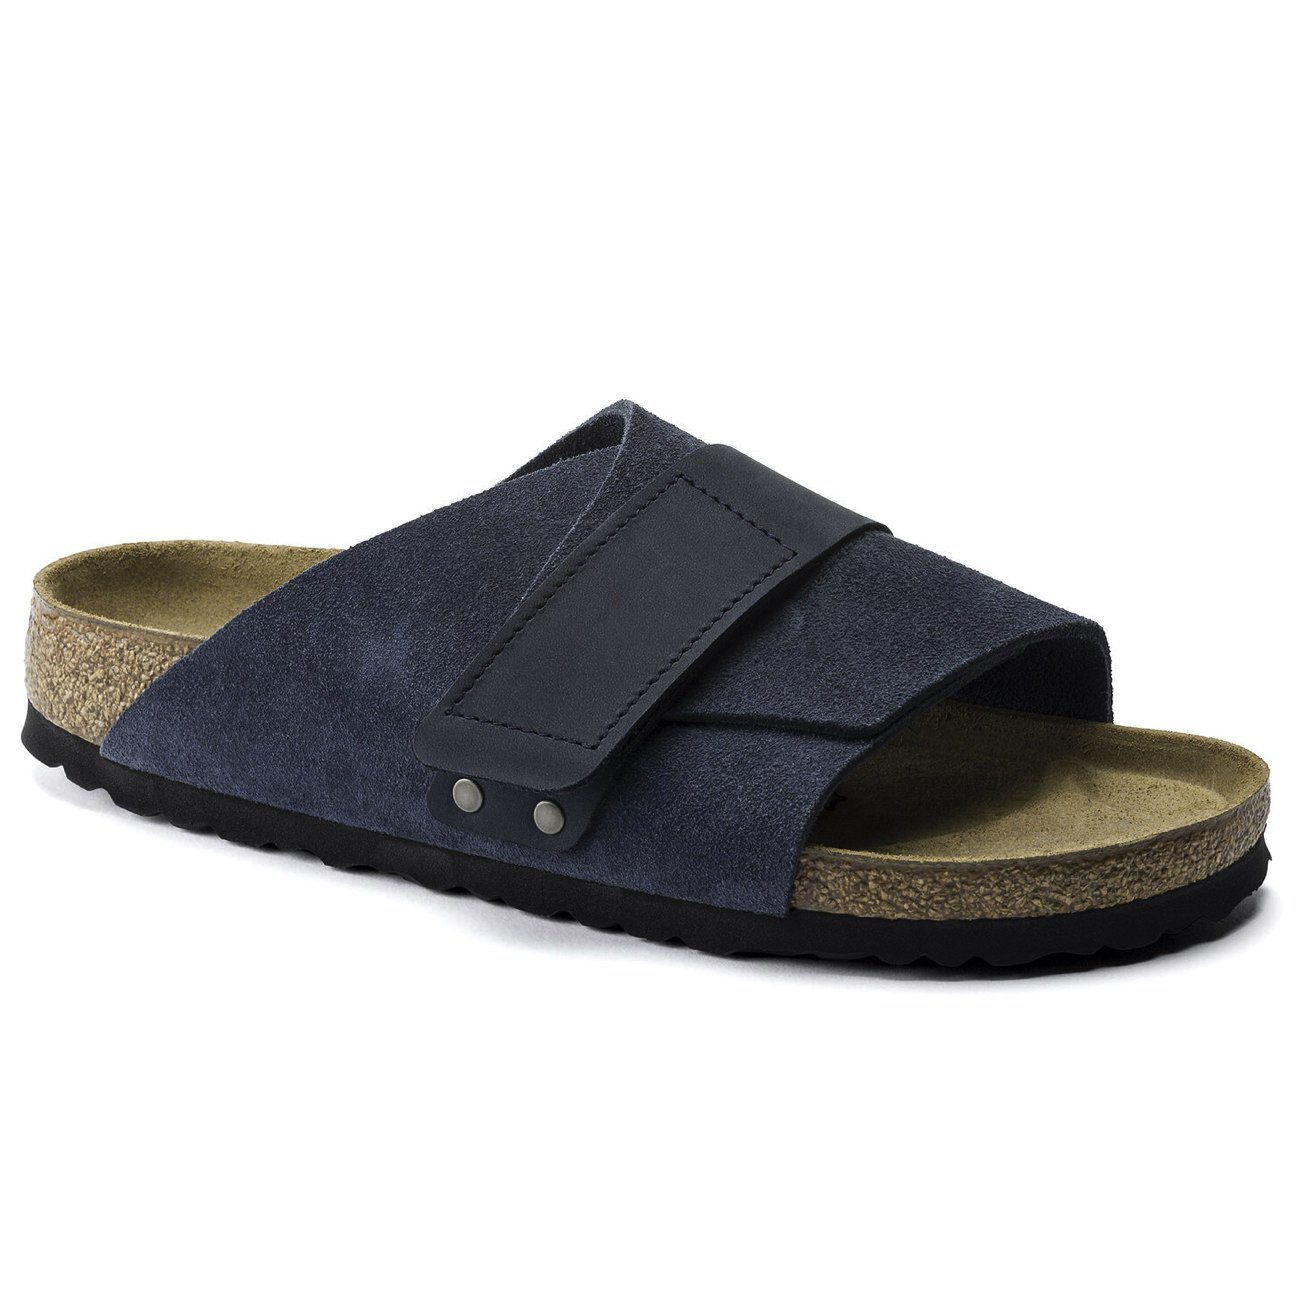 Birkenstock Seasonal, Kyoto, Suede/Nubuck Leather, Regular Fit, Navy Sandals Birkenstock Seasonal Navy 39